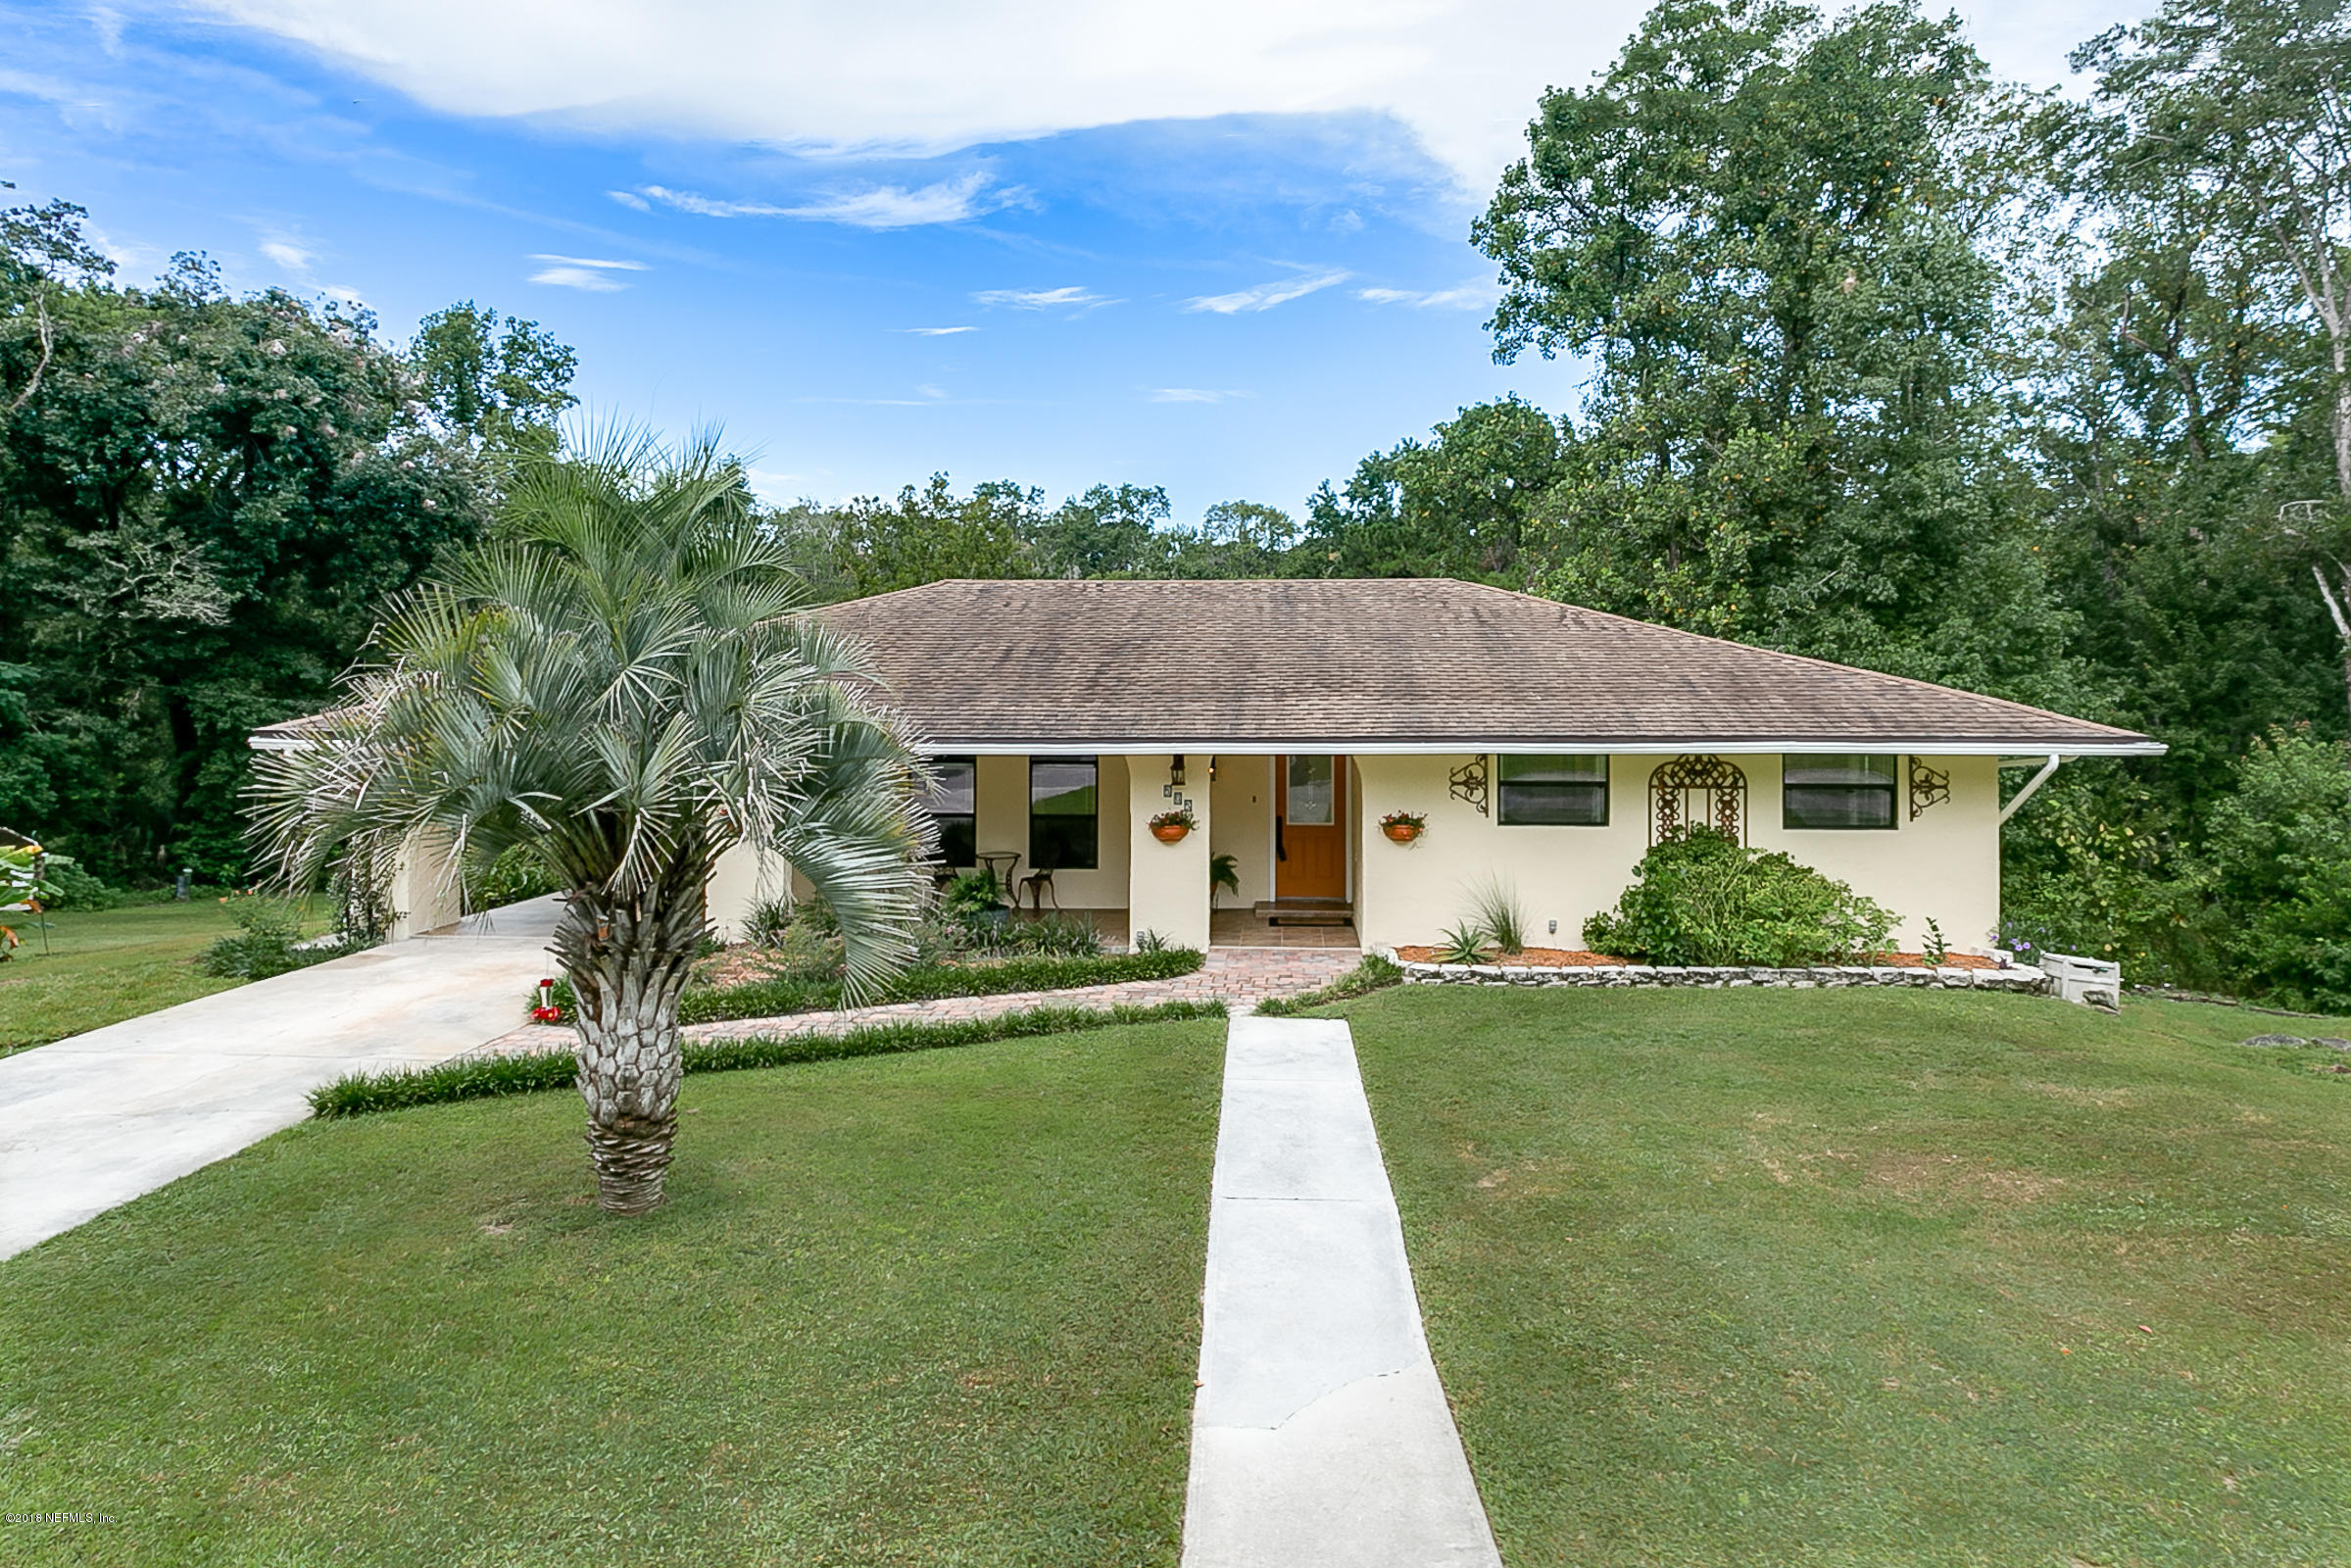 505 HILL, GREEN COVE SPRINGS, FLORIDA 32043, 6 Bedrooms Bedrooms, ,4 BathroomsBathrooms,Residential - single family,For sale,HILL,954705